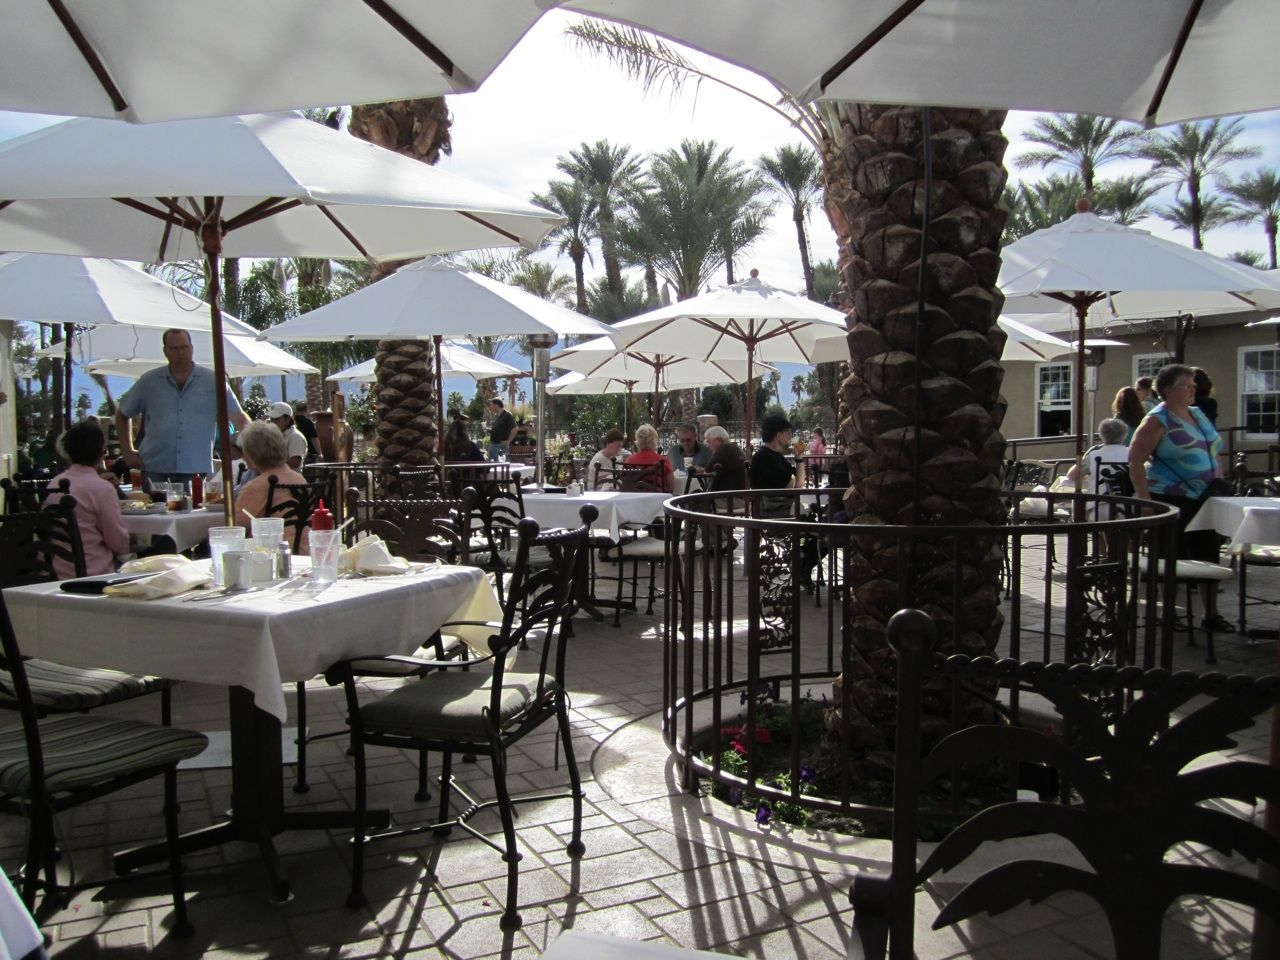 Shield S Cafe At Shield S Date Garden In Indio Ca Palm